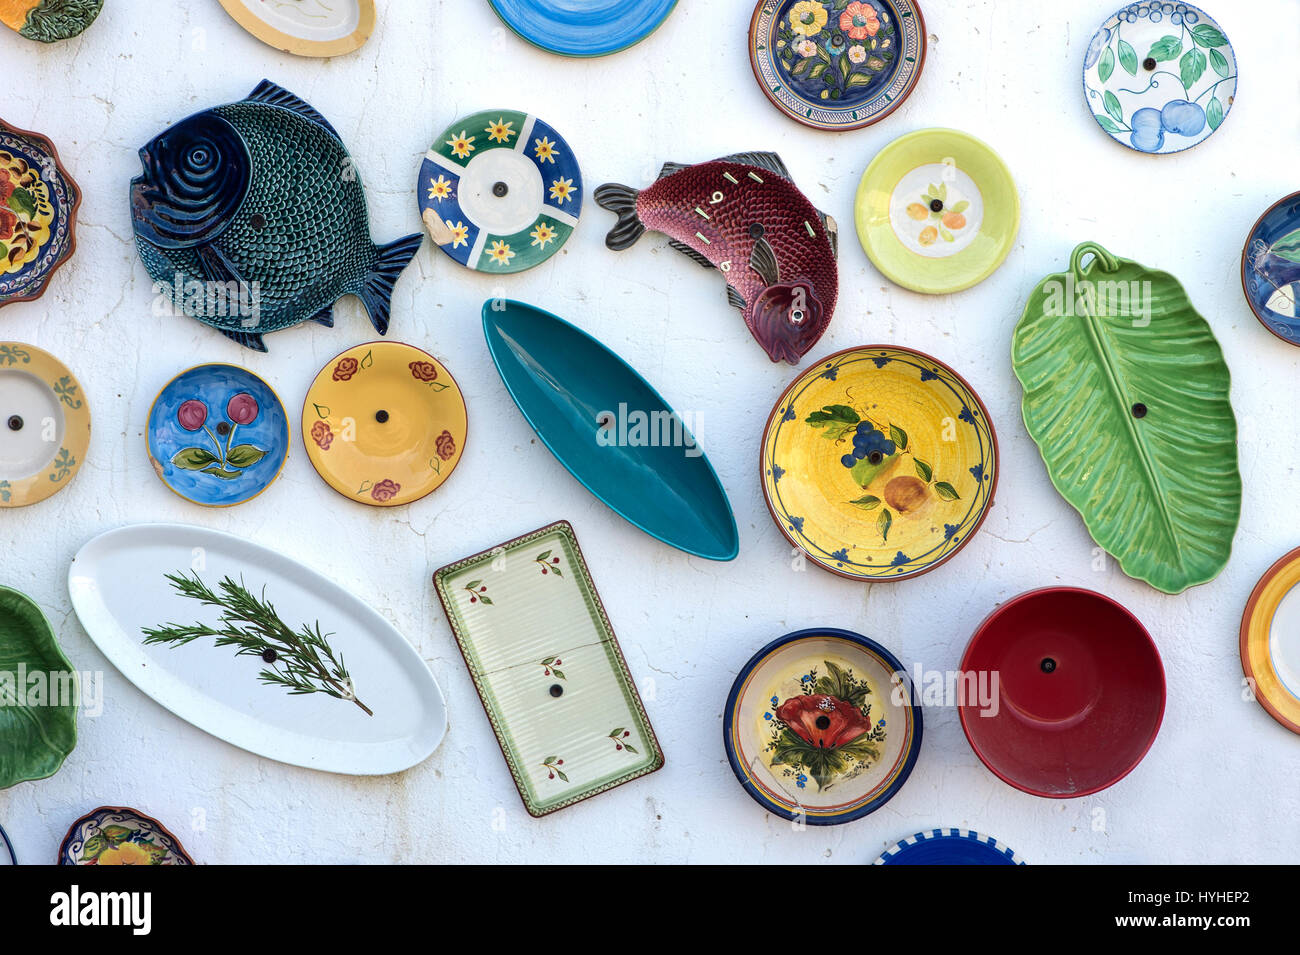 Argila Artesanato Onde Comprar ~ Hand painted traditional Portuguese pottery at the wall of the Stock Photo, Royalty Free Image